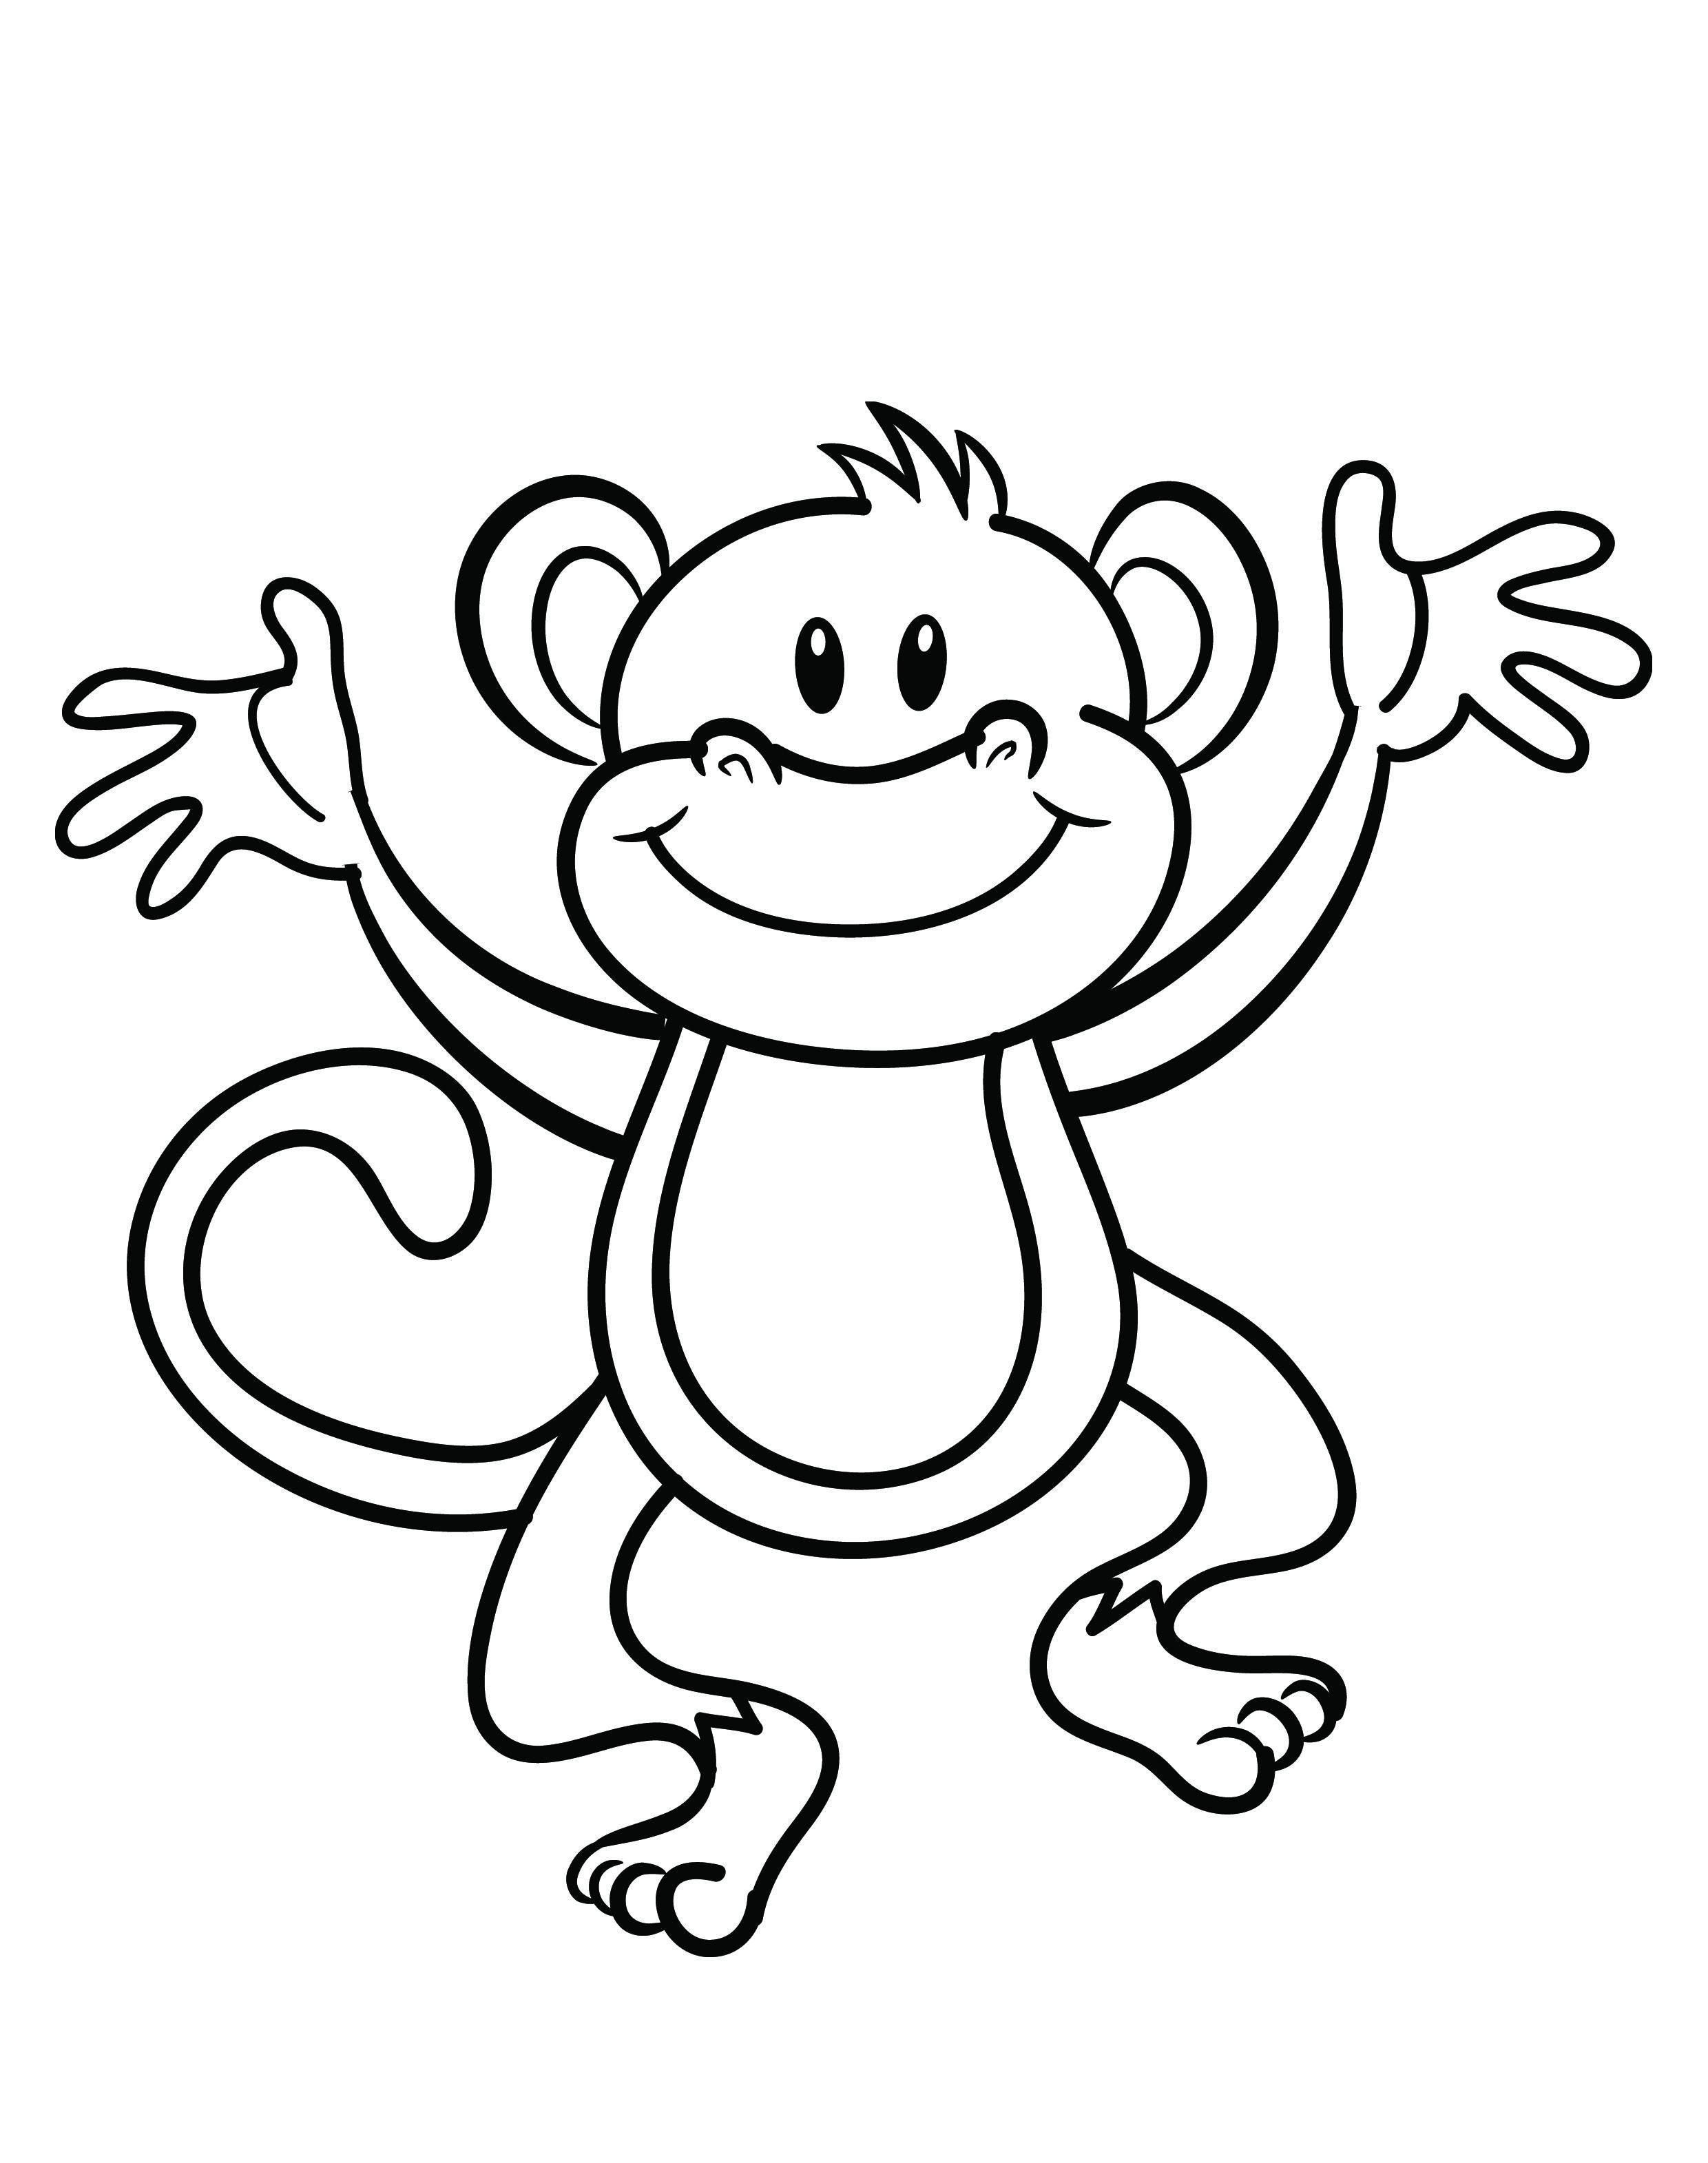 Free printable monkey coloring page | cj 1st birthday | Monkey ...